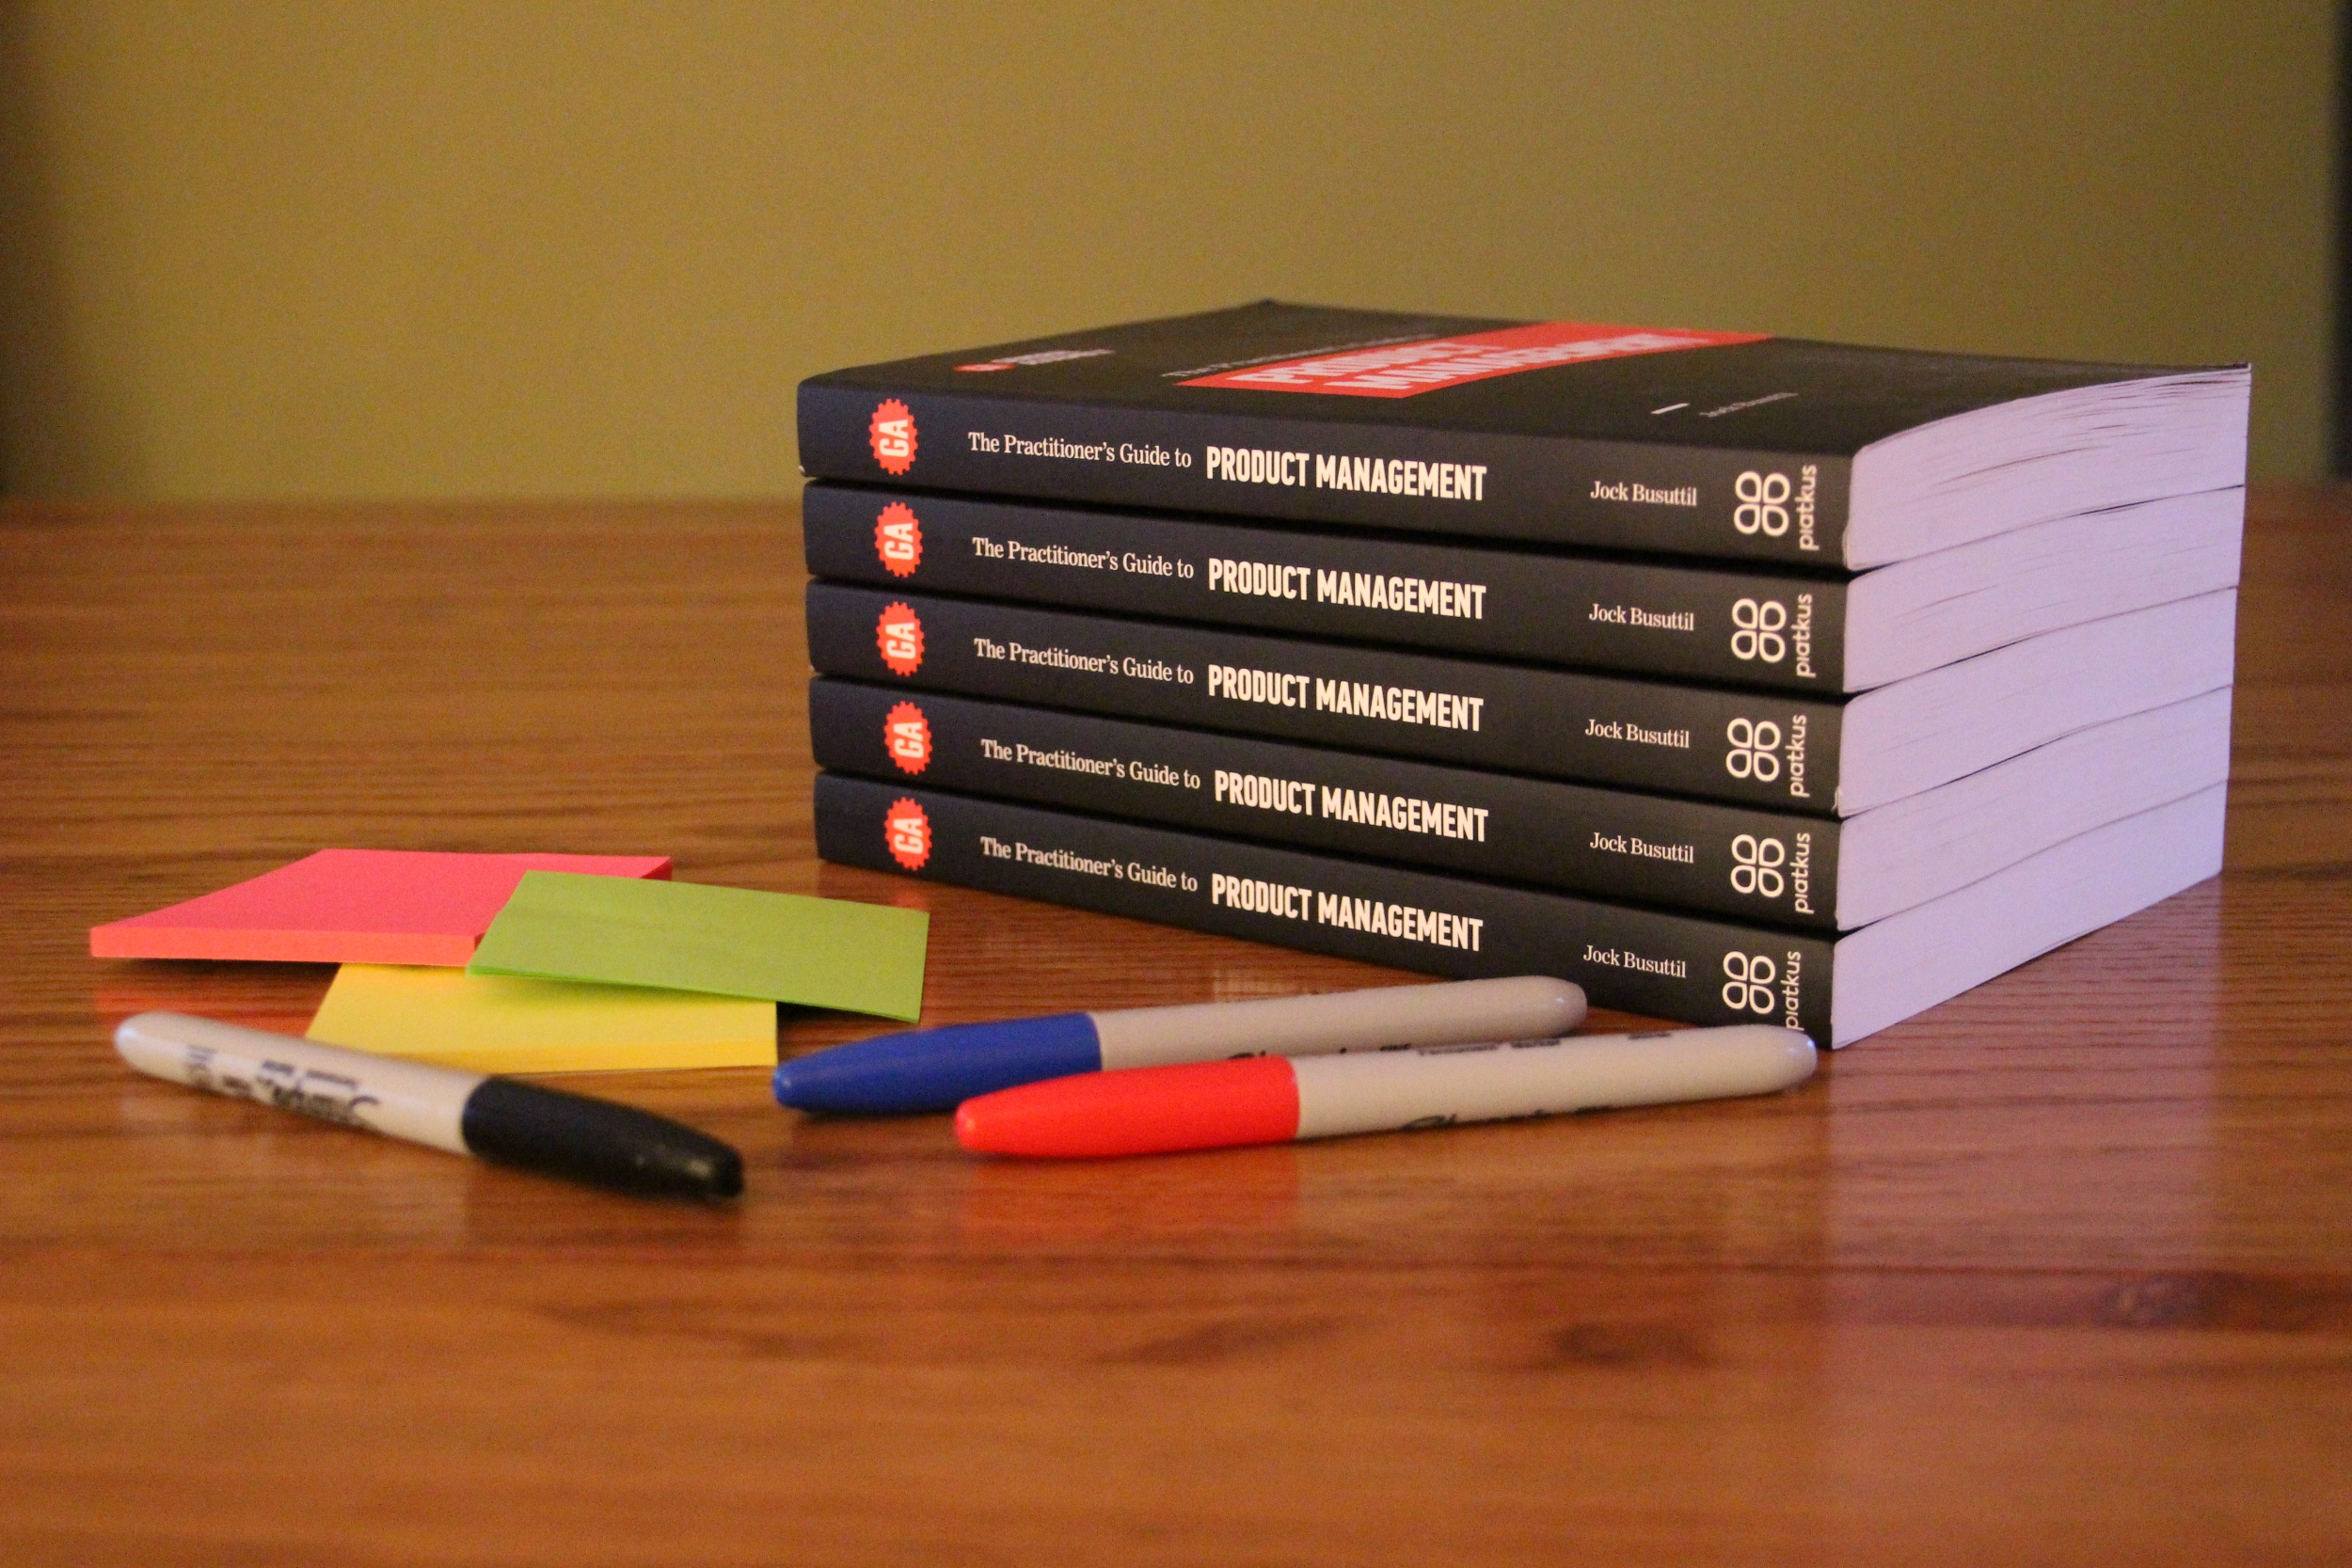 "A pile of books ""The Practitioner's Guide to Product Management"" sits on a table next to some colourful sticky notes and Sharpie pens (Photo by Jock Busuttil / Product People Limited)"